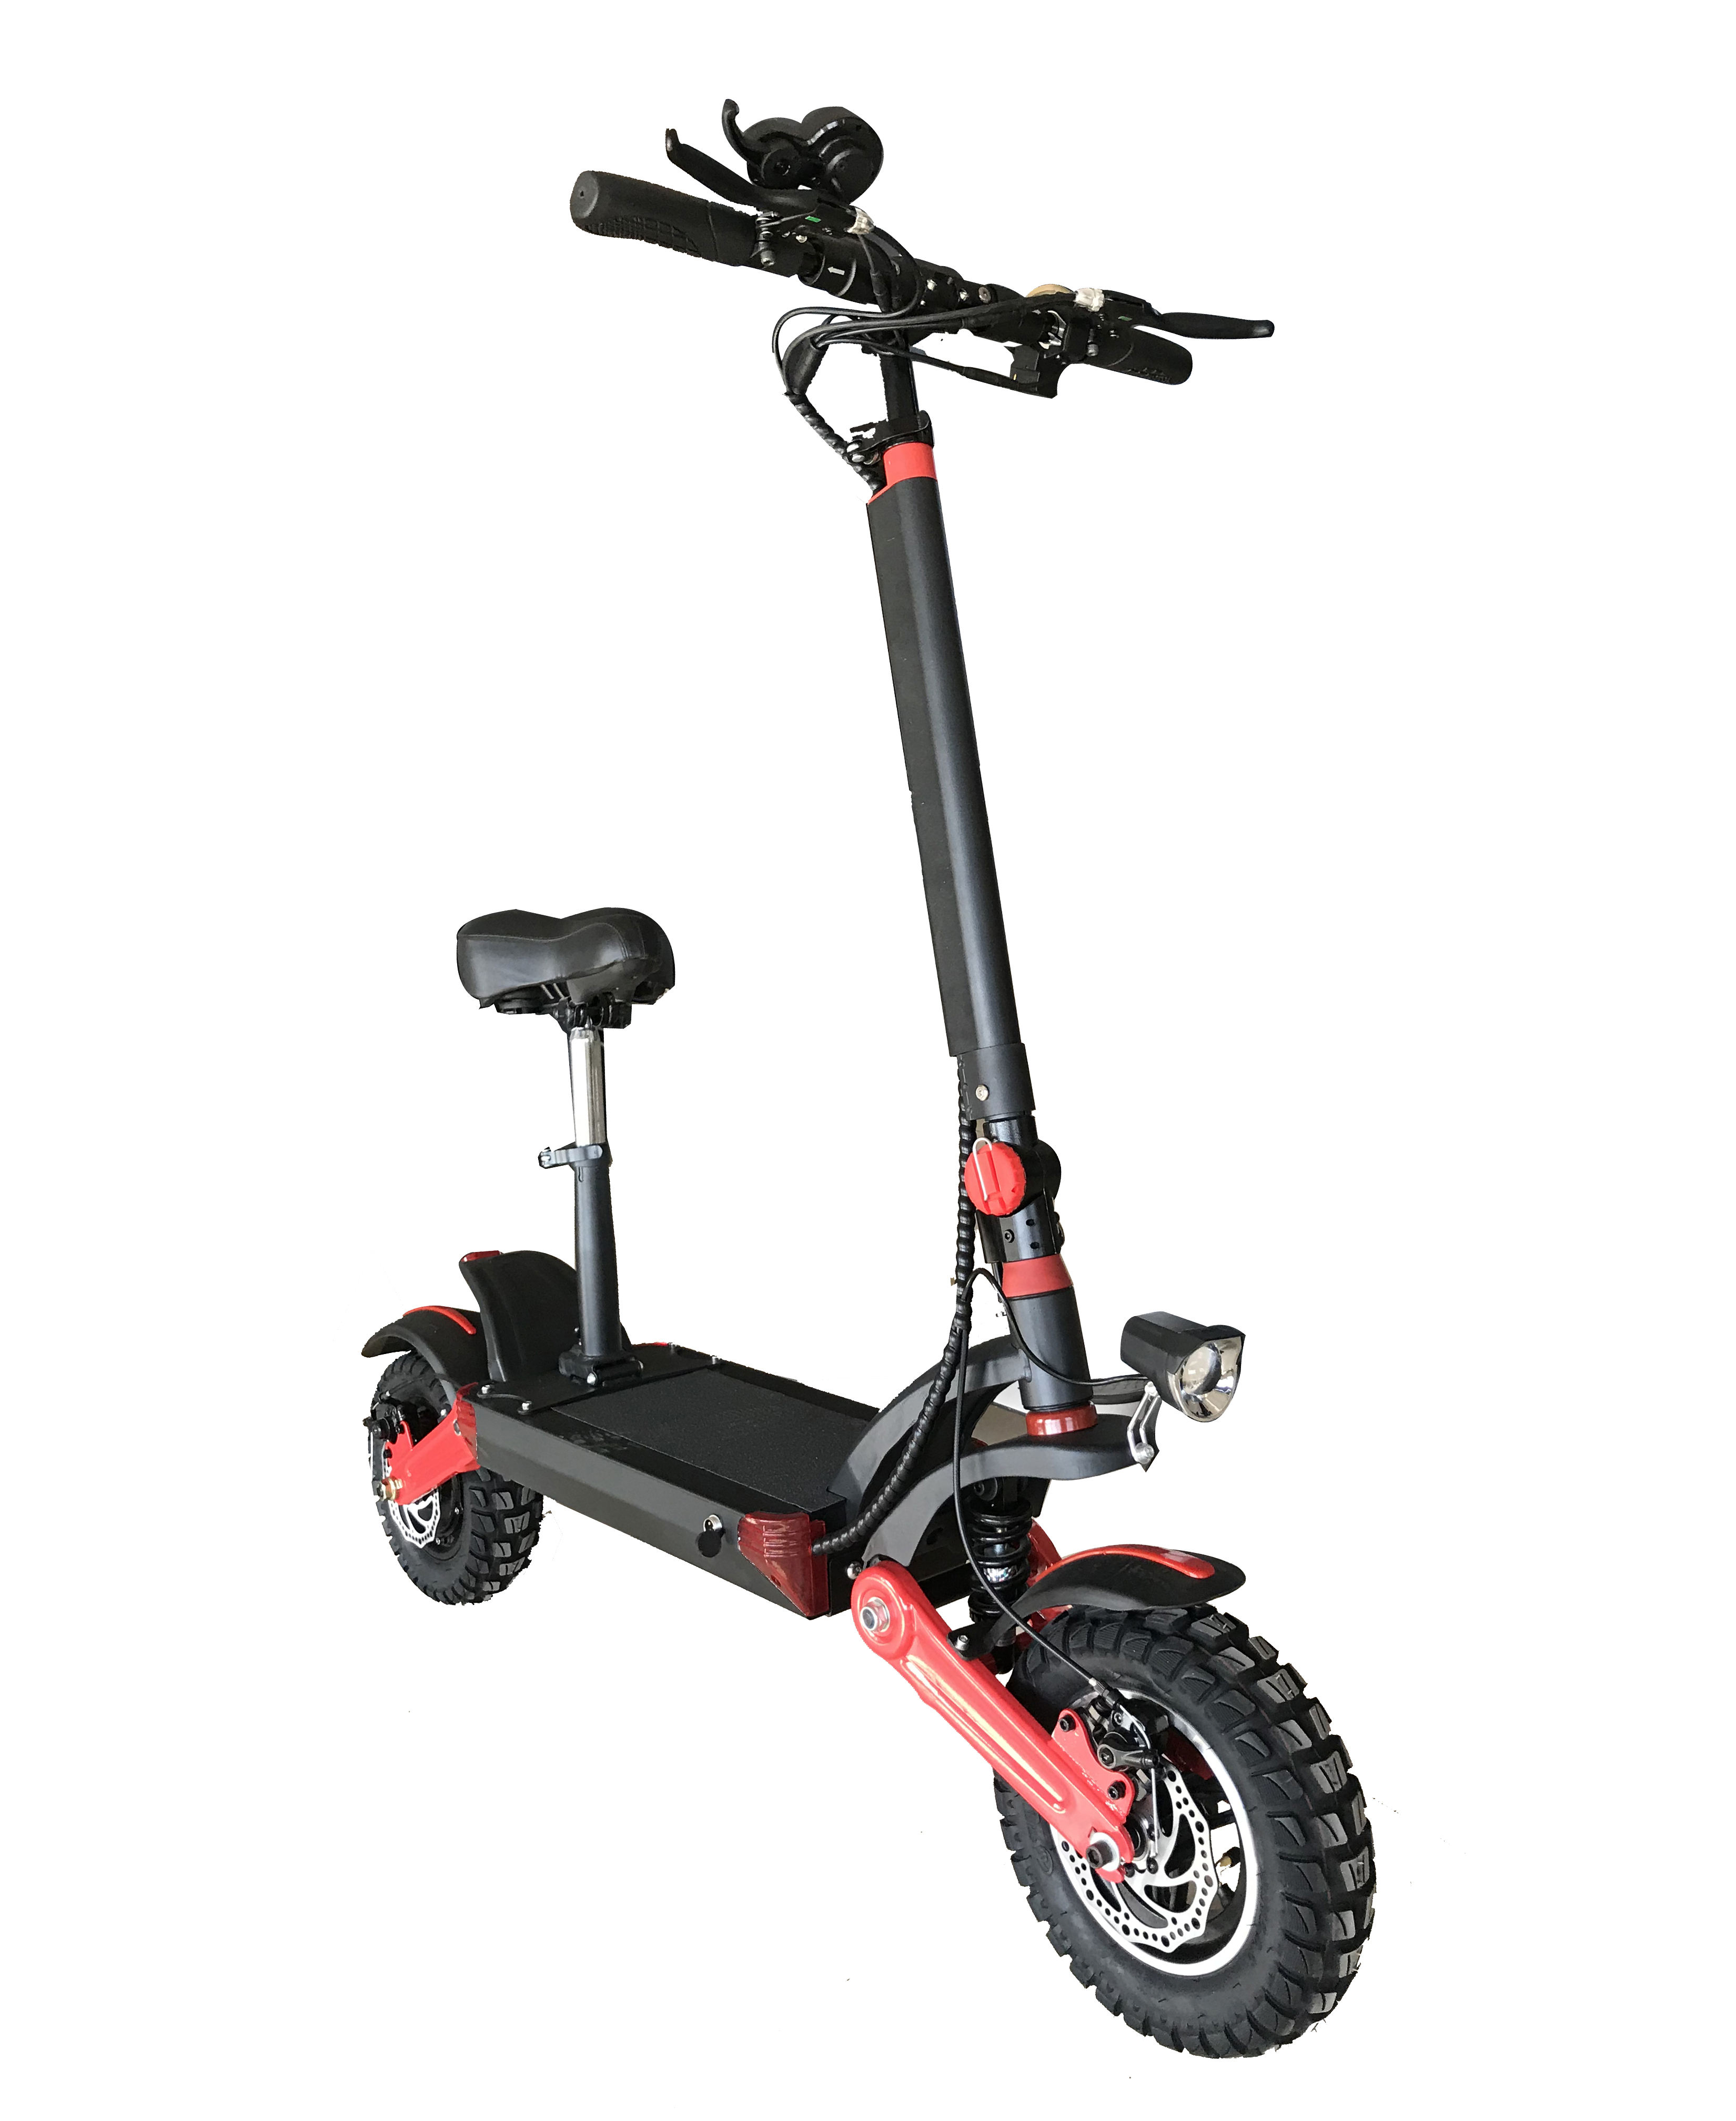 High Power 500W Fat Tire 12 Inch Suv E-Scooter Off Road Folding Electric Scooter Lithium Battery With Seat For Adults